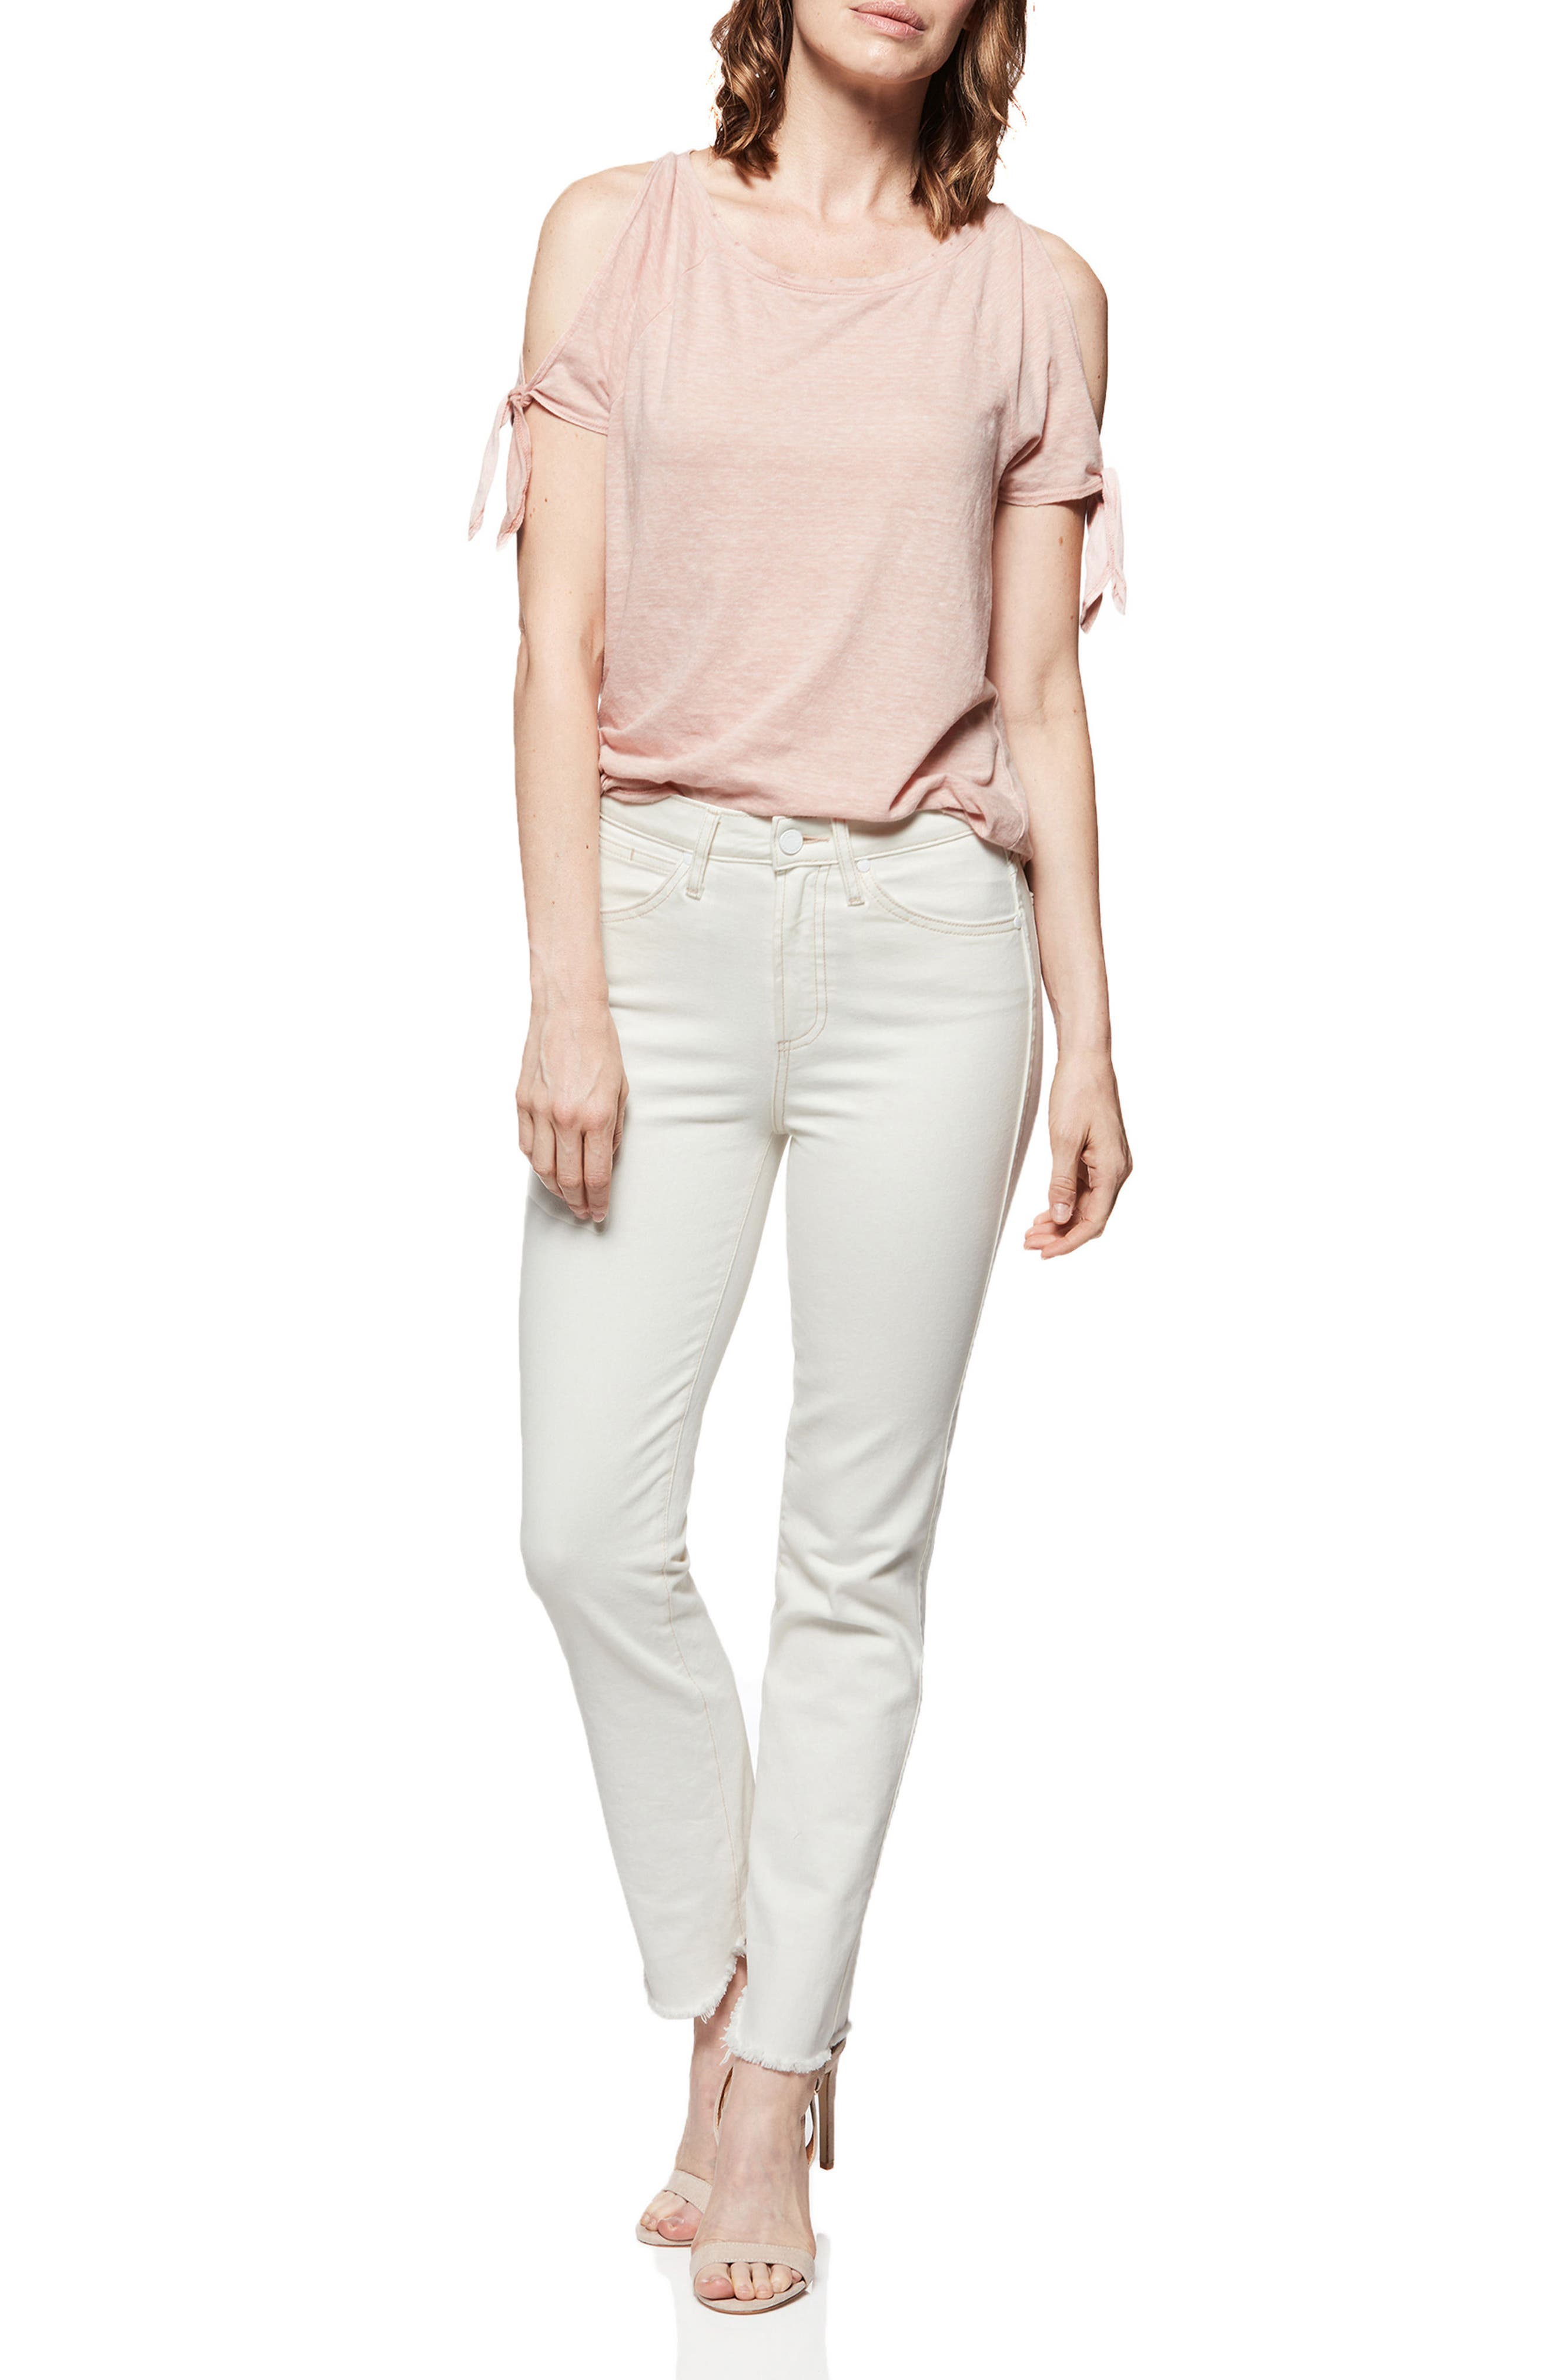 Hoxton High Waist Ankle Straight Jeans,                             Alternate thumbnail 3, color,                             Cream/ Pink